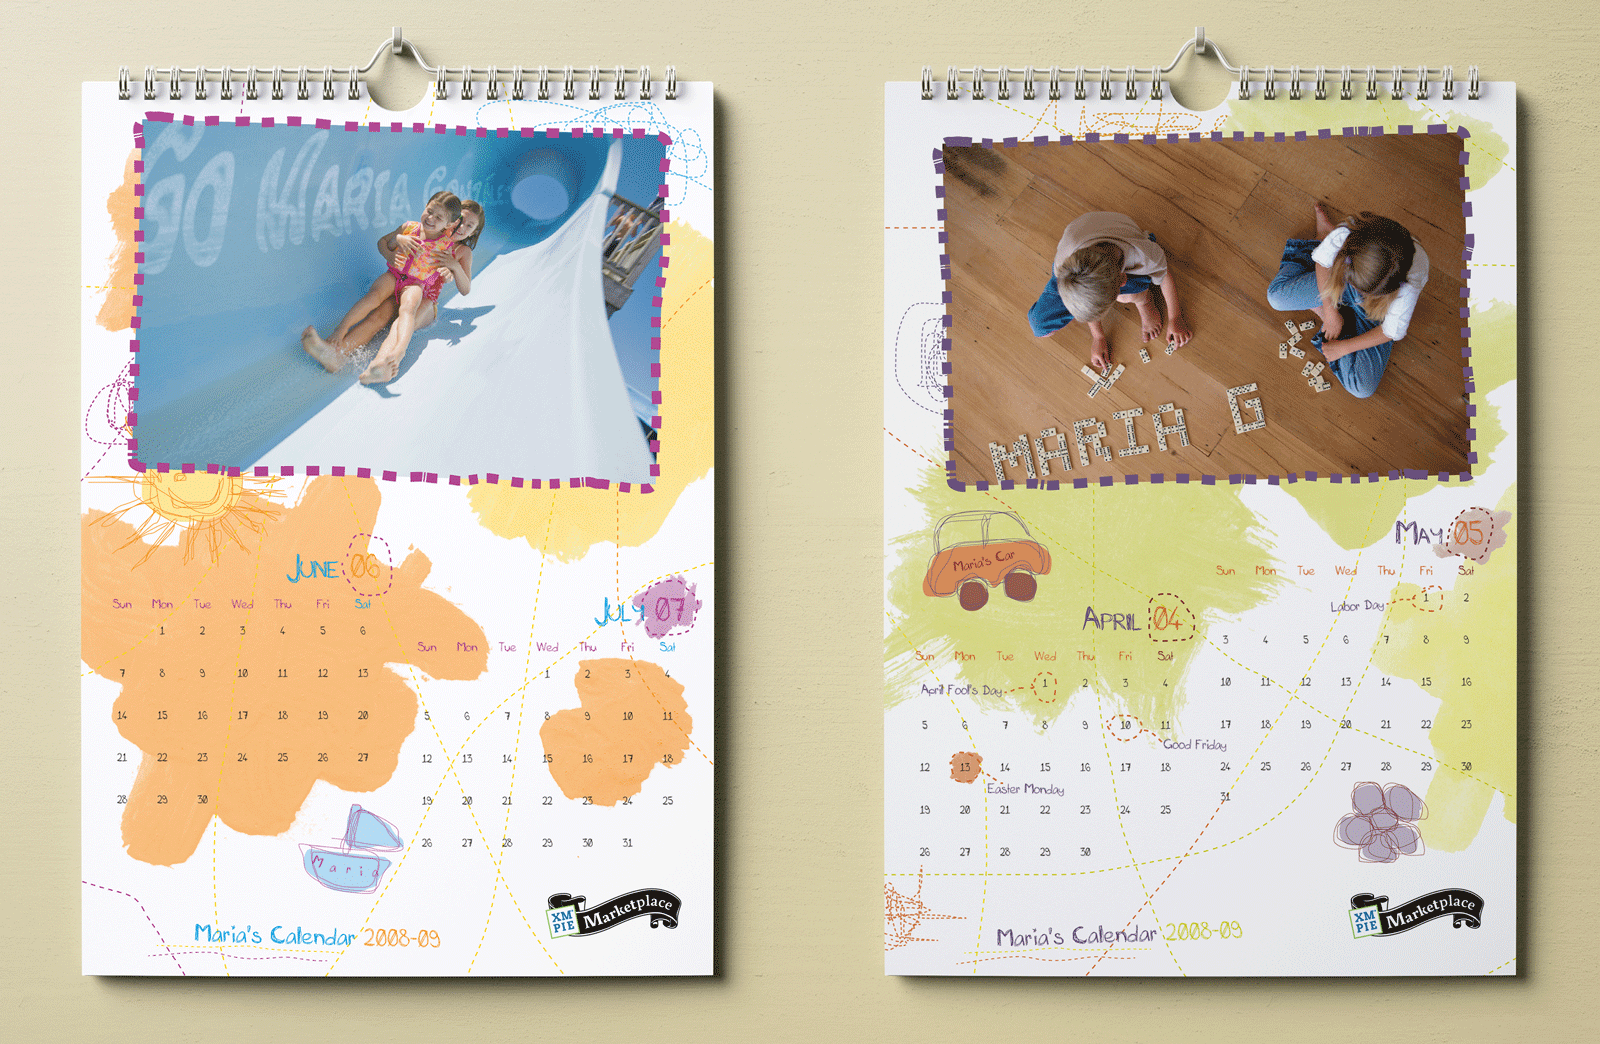 http://bigeyes.co.il/wp-content/uploads/2019/07/kids-calendar-4.png